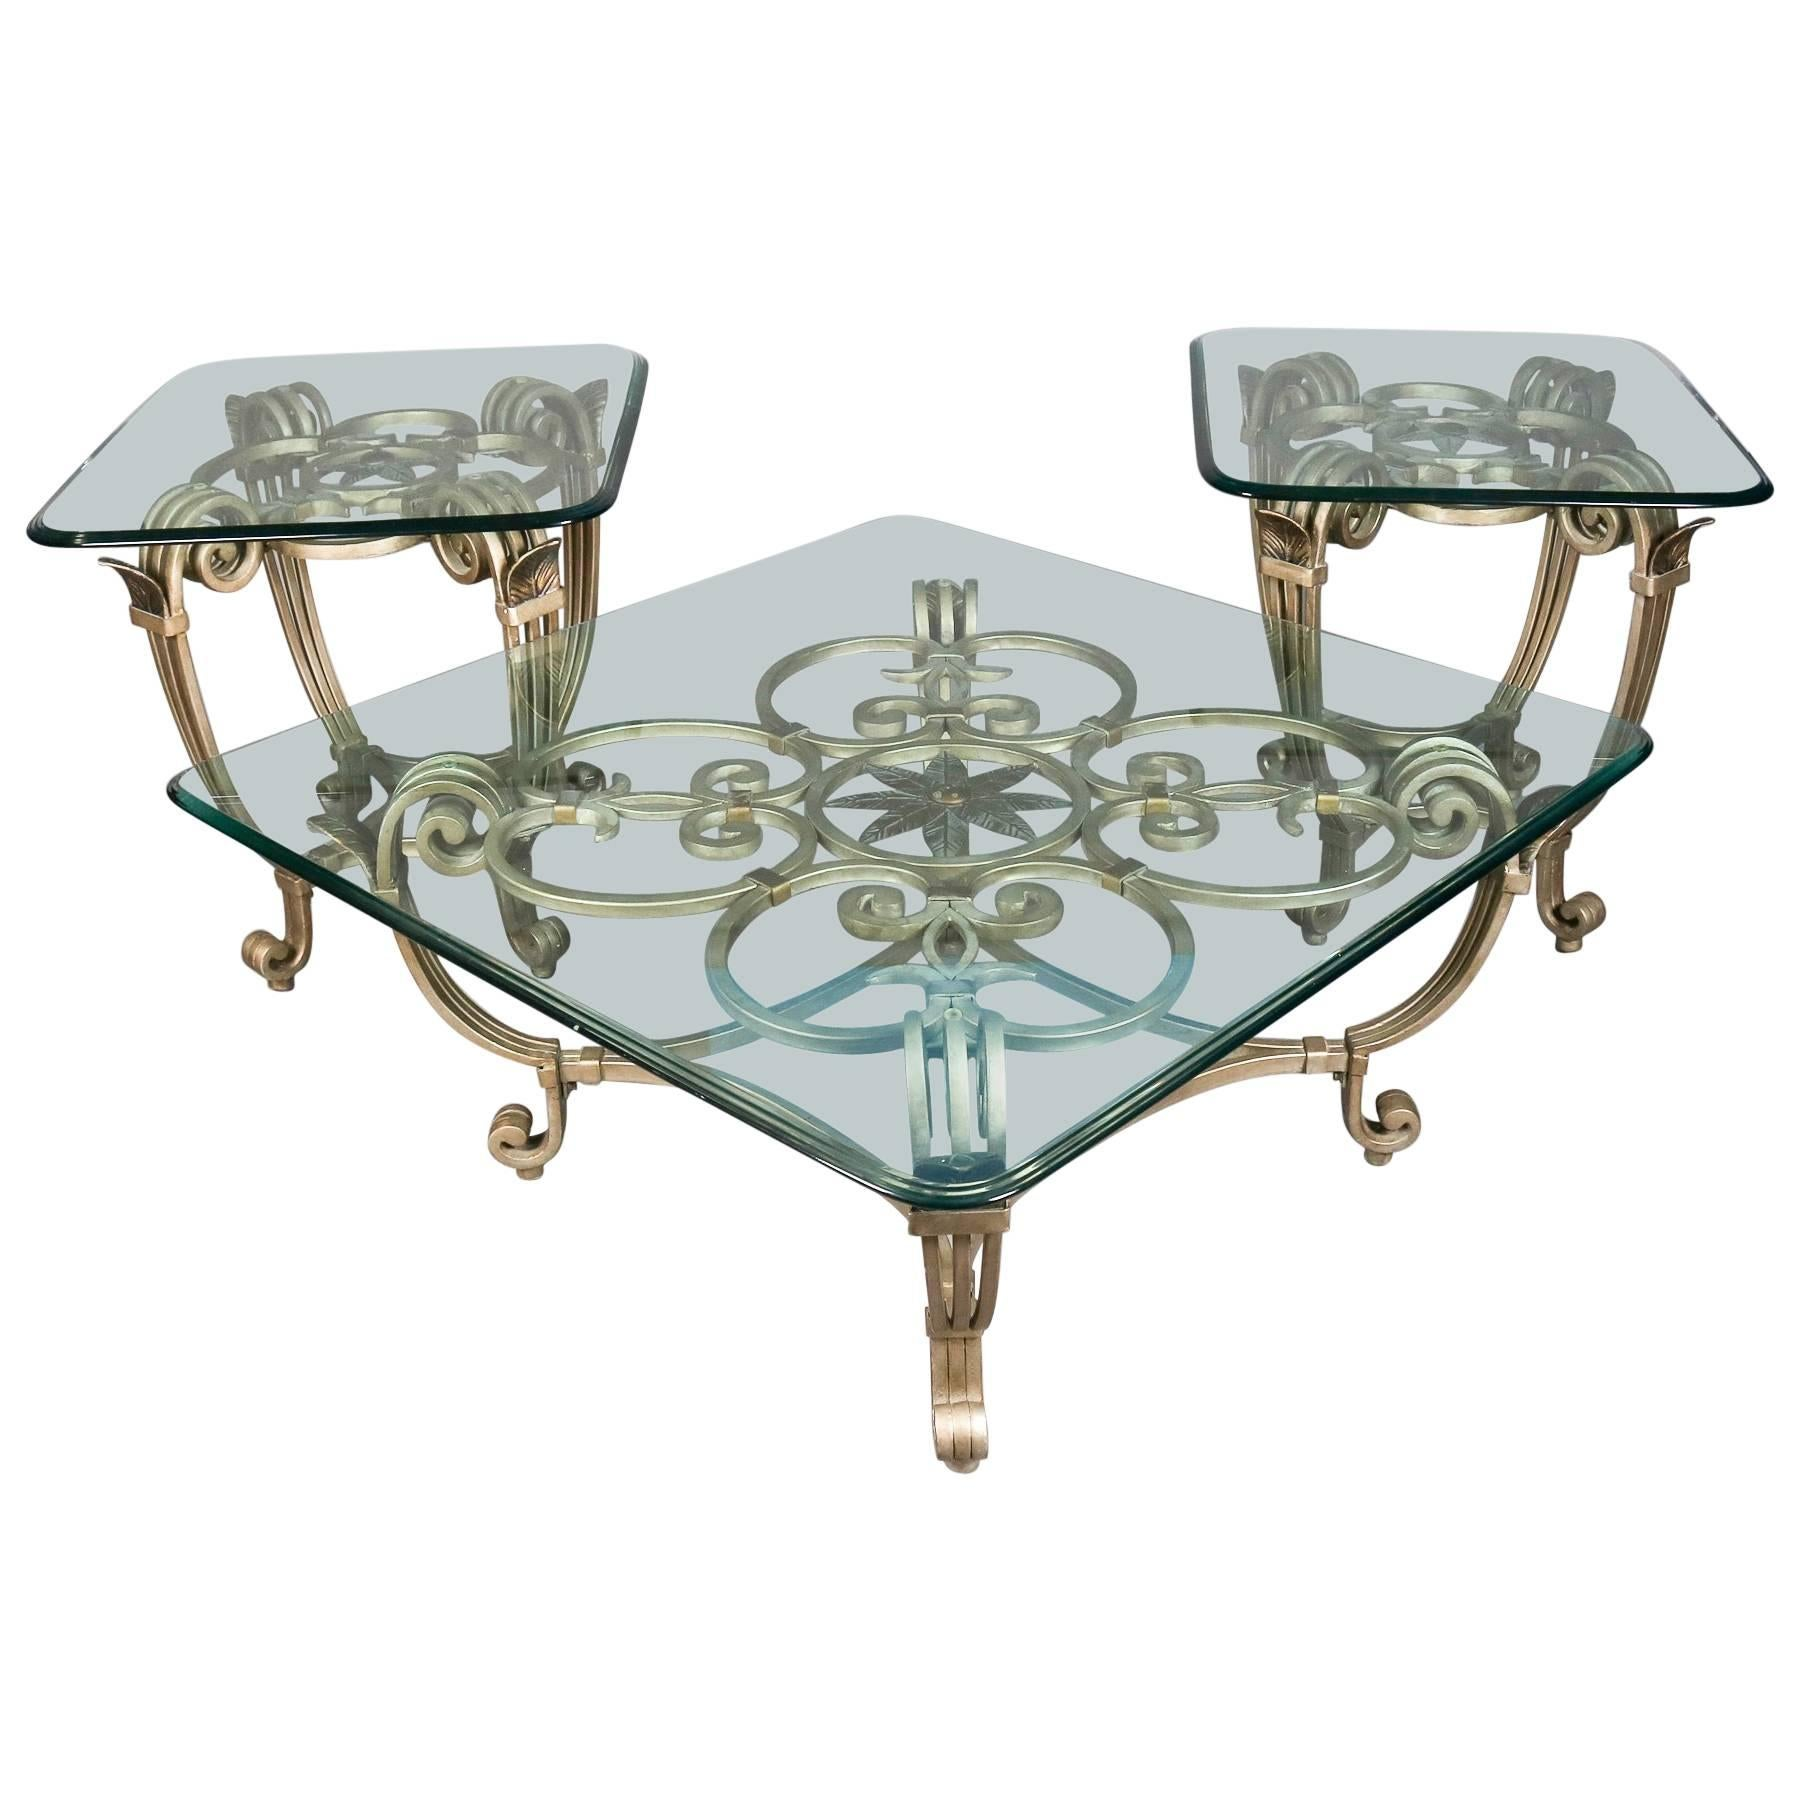 Charmant Hollywood Regency Gilt Iron U0026 Glass Fleur De Lis Table Set, 20th Century  For Sale